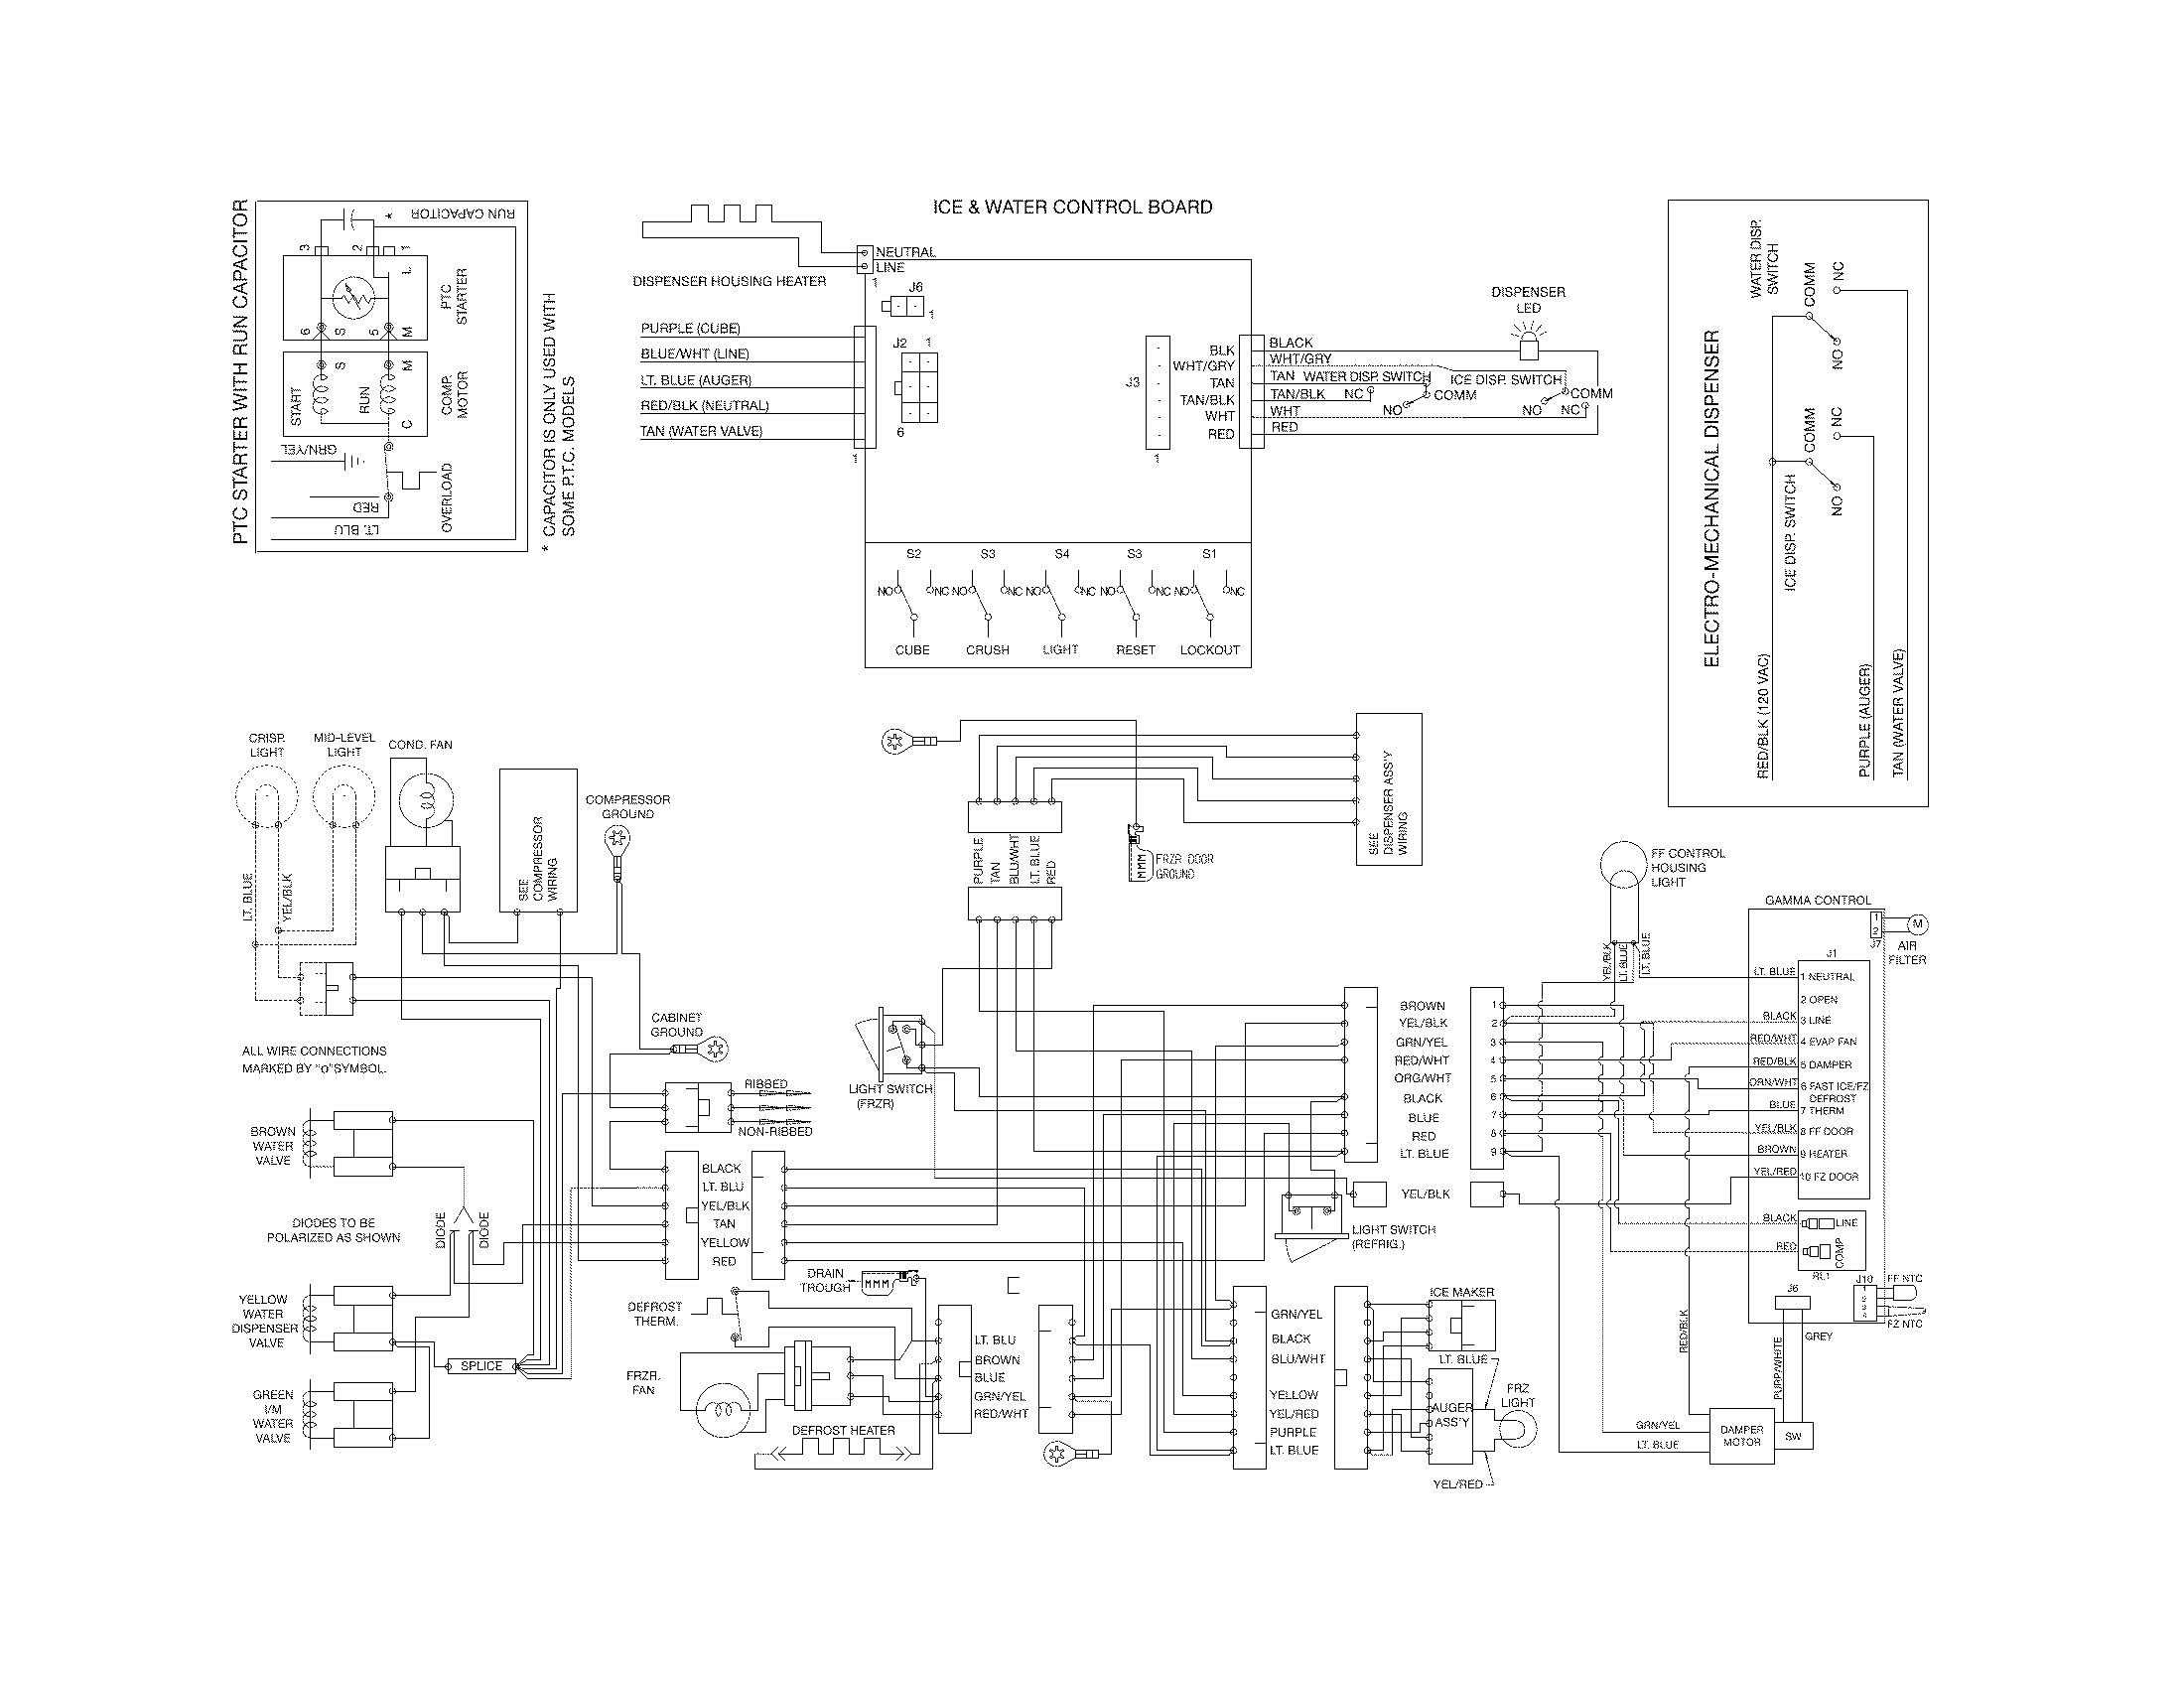 Wiring Diagram For Frigidaire Dishwasher Model Lfbd2409lwob - Block ...